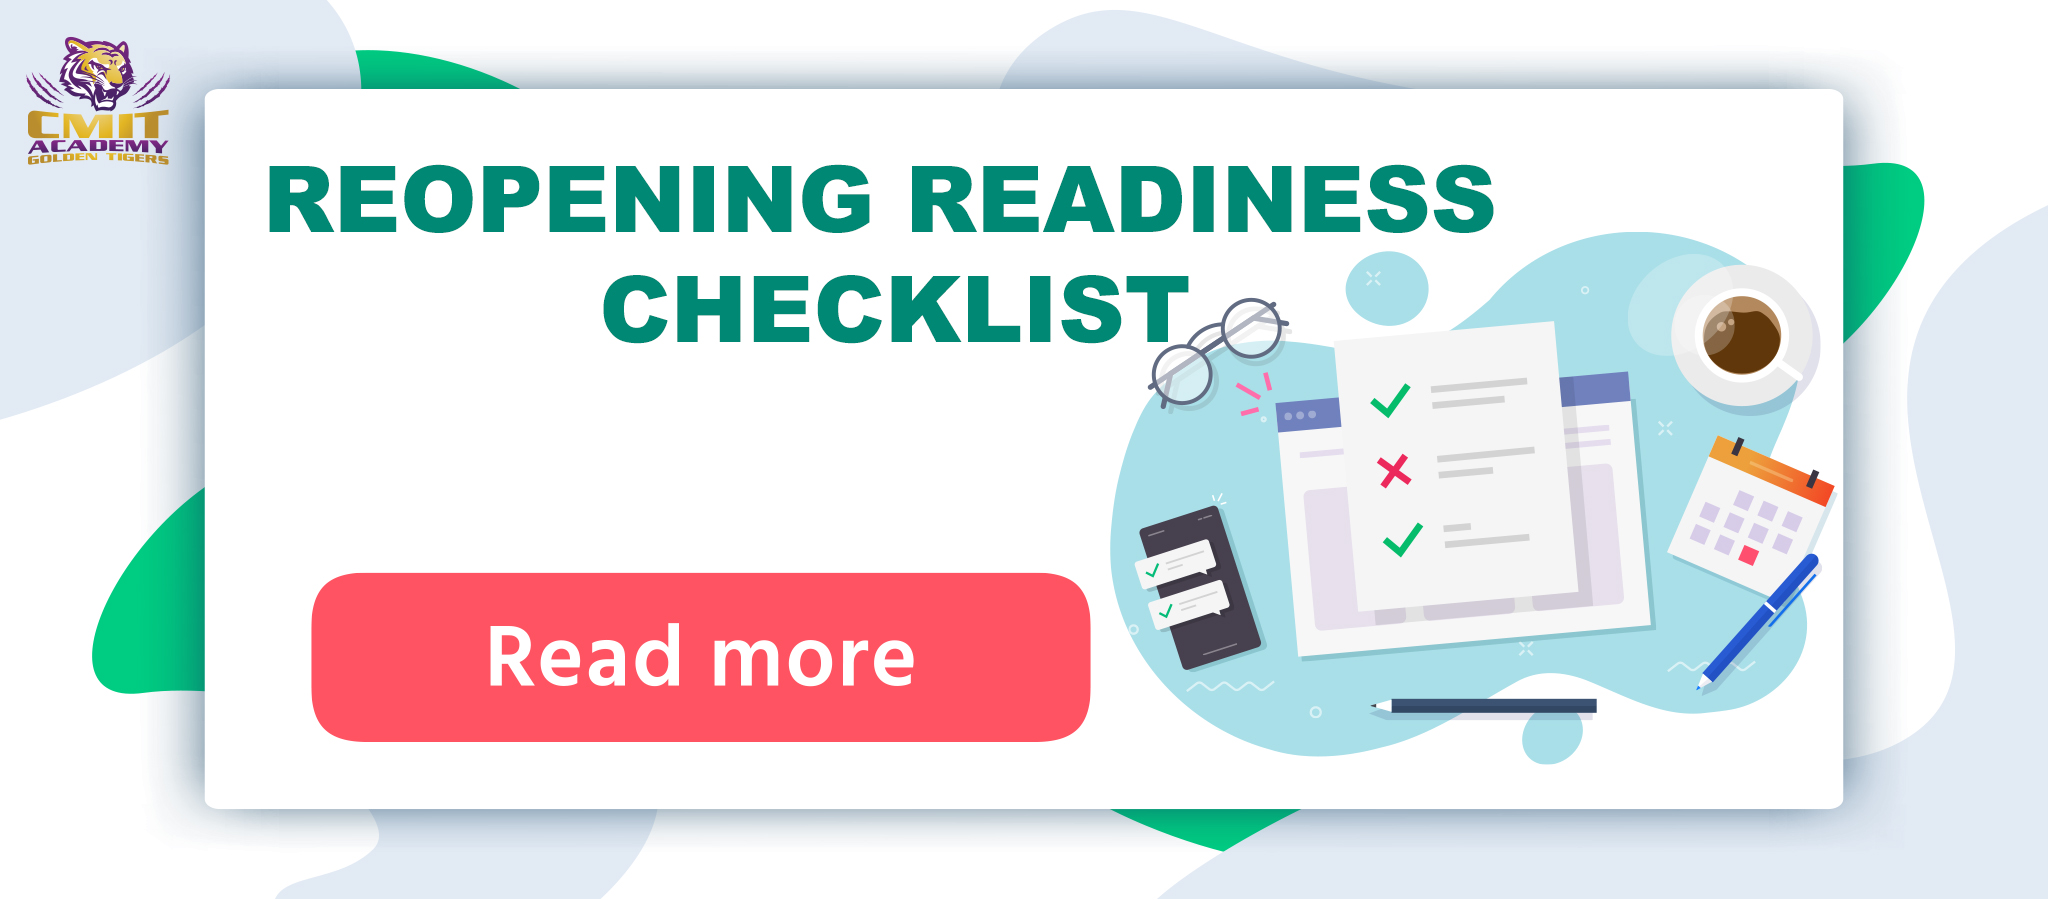 REOPENING READINESS CHECKLIST